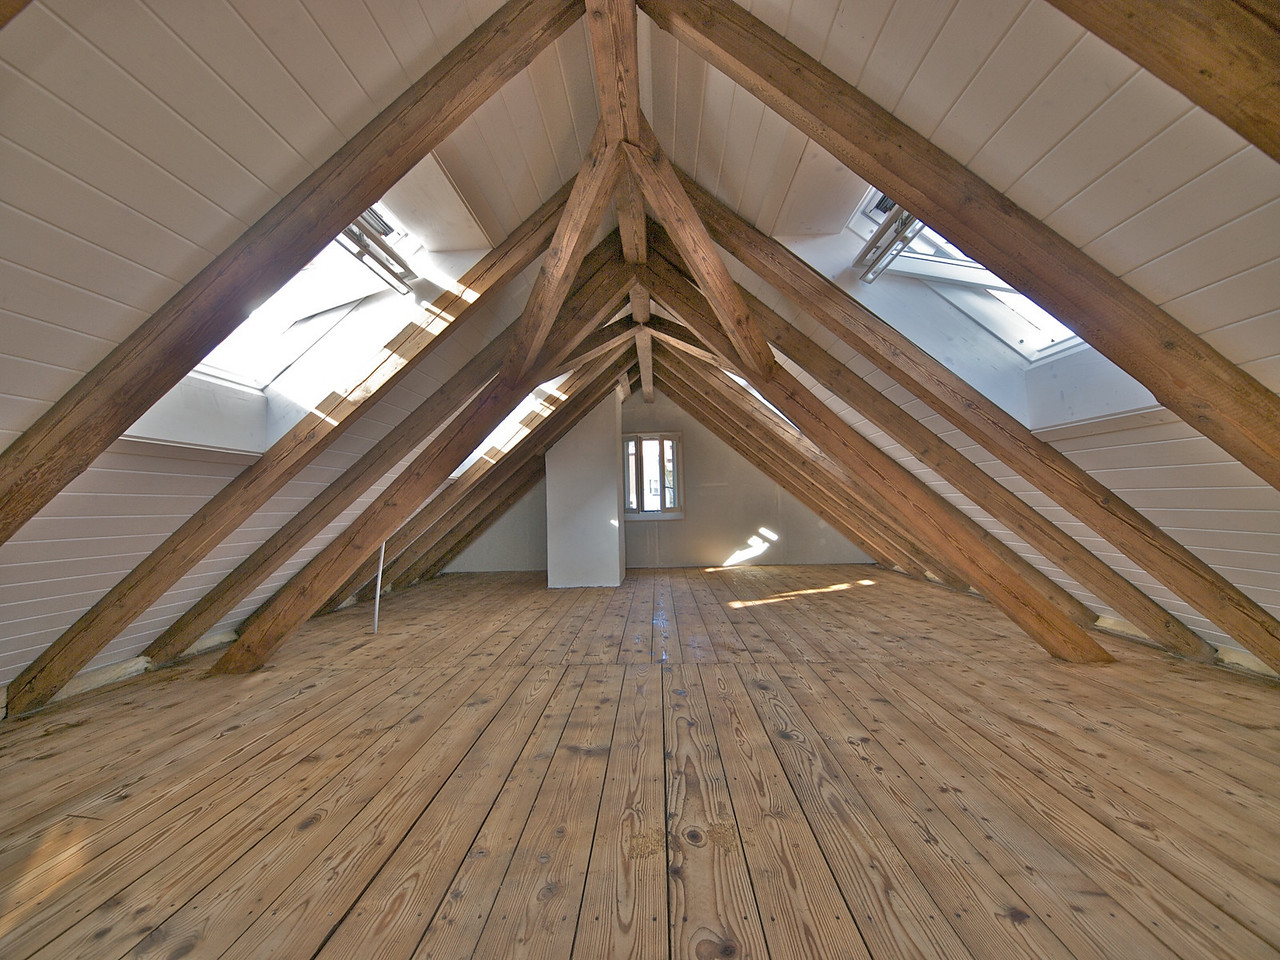 Monday 31st march 2008 - This is what the attic now look likes, nearly finished